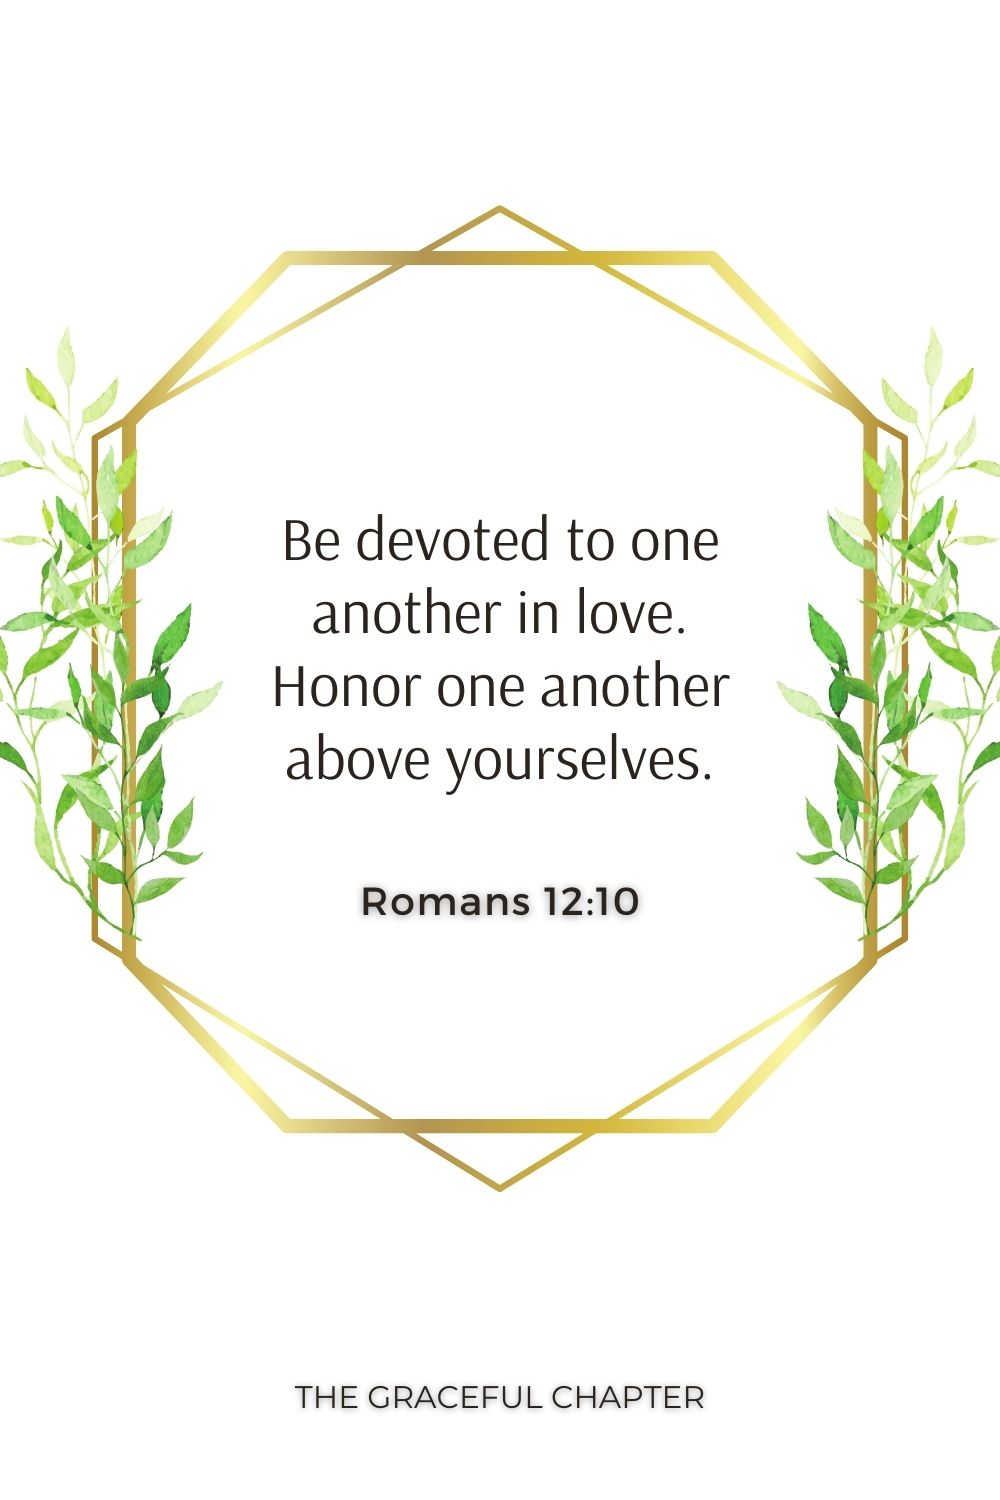 Be devoted to one another in love. Honor one another above yourselves. Romans 12:10